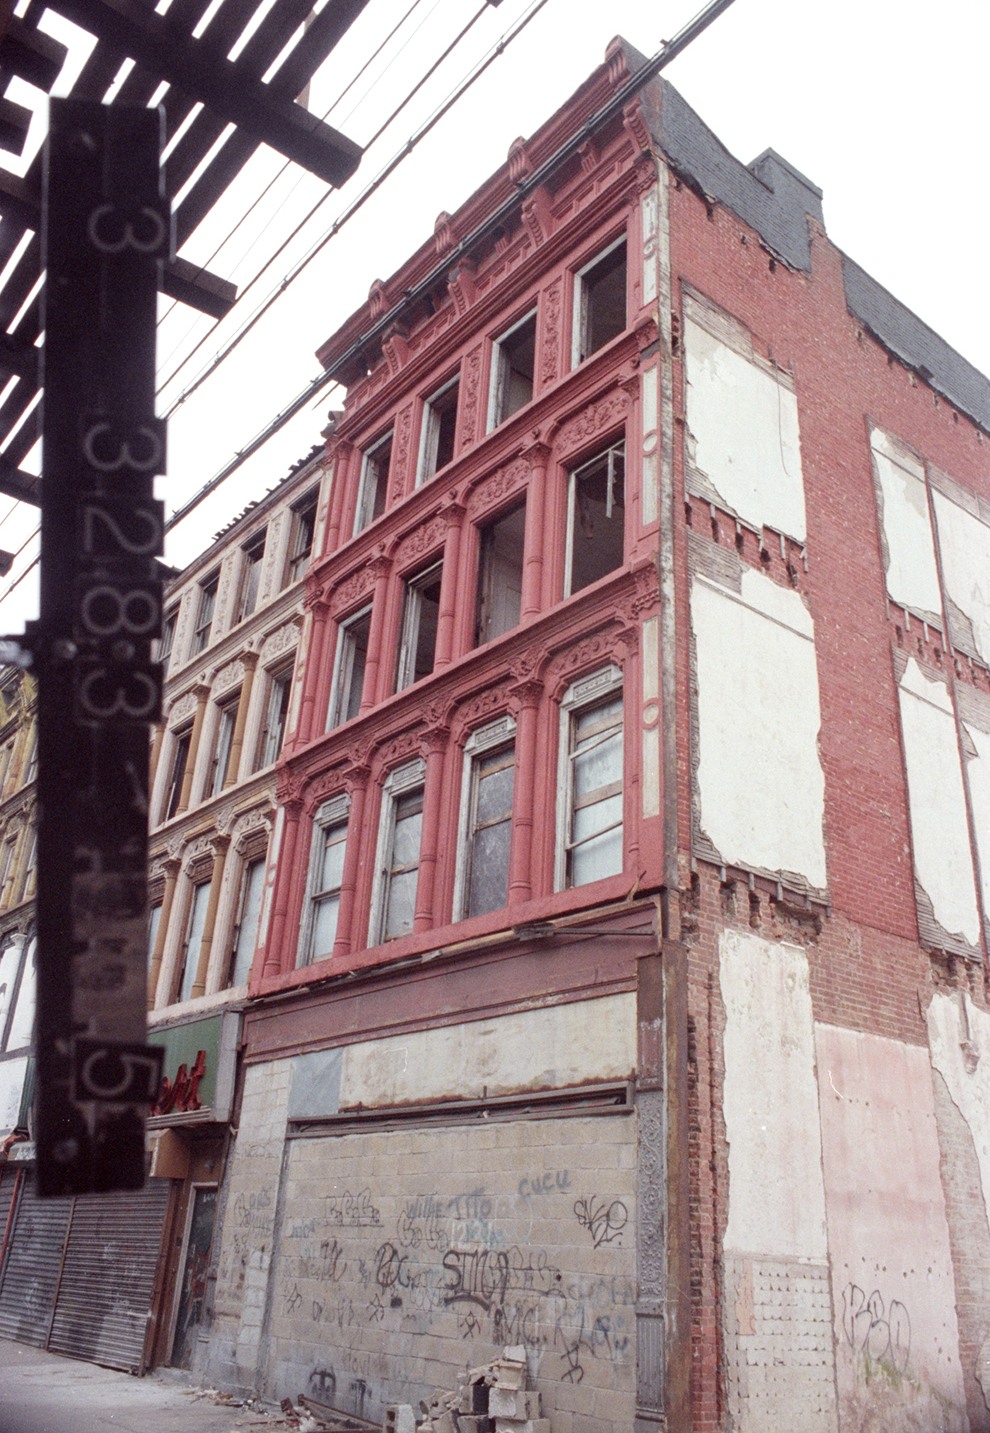 1235 Broadway in the 1980s shown, completely vacant with windows shattered. Department of Finance Collection, NYC Municipal Archives.